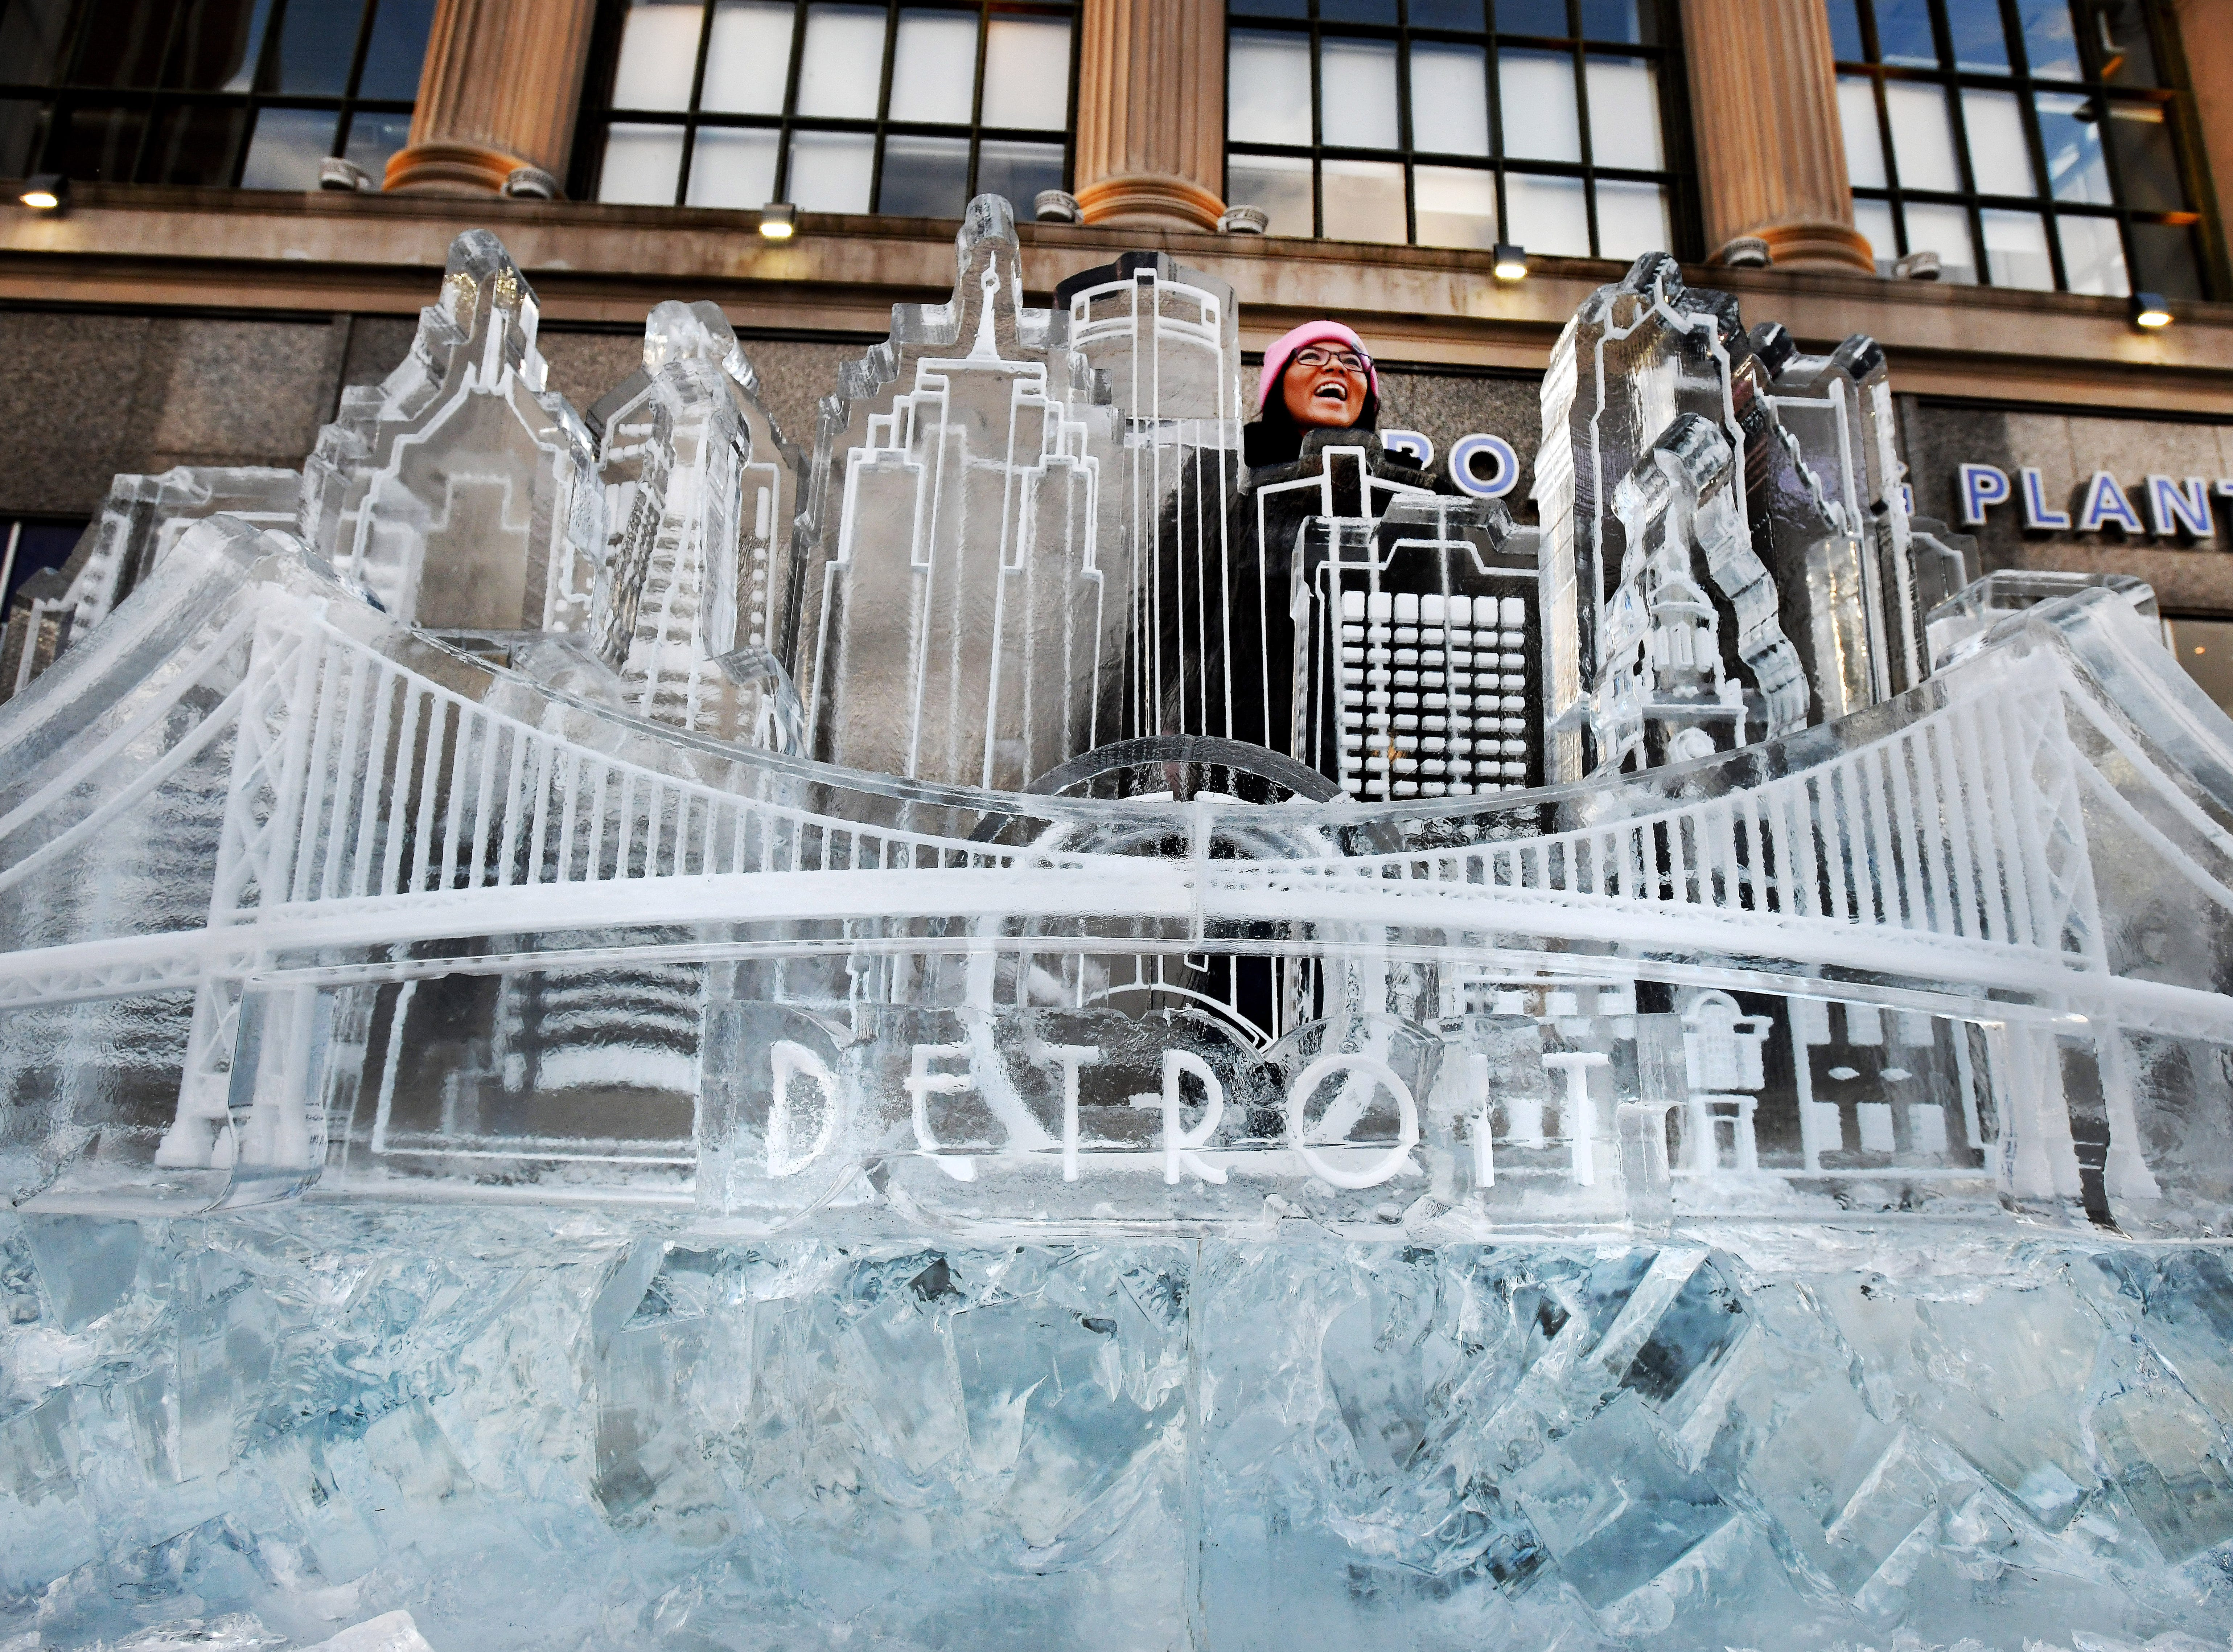 Detroiter Grace Albers braves the bitterly-cold winds to pose for a picture behind a Motown skyline ice sculpture created by US Ice Carvings for the 2019 Motown Winter Blast in Detroit, Michigan on February 8, 2019.